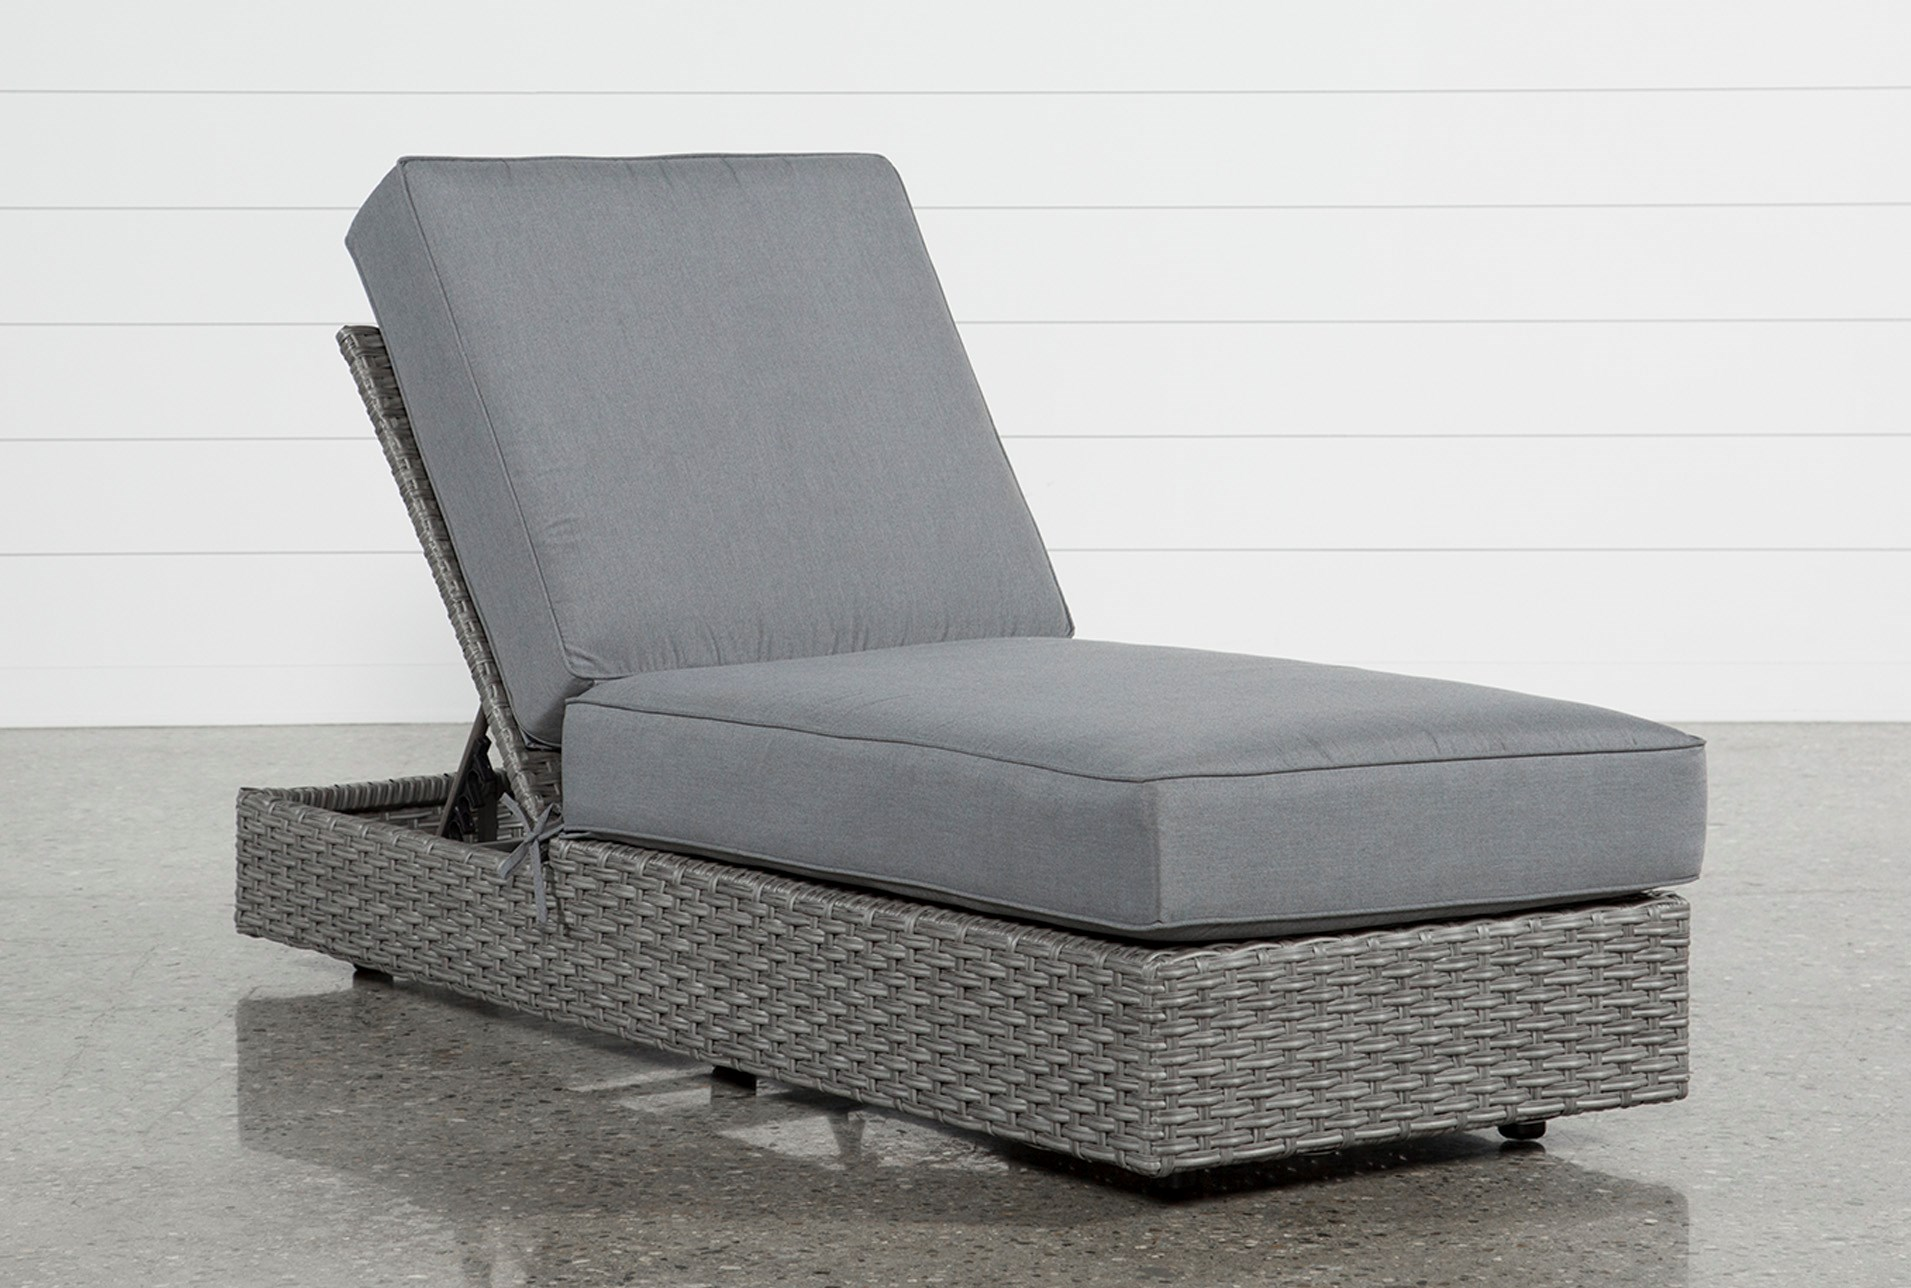 Outdoor Koro Chaise Lounge Qty 1 Has Been Successfully Added To Your Cart